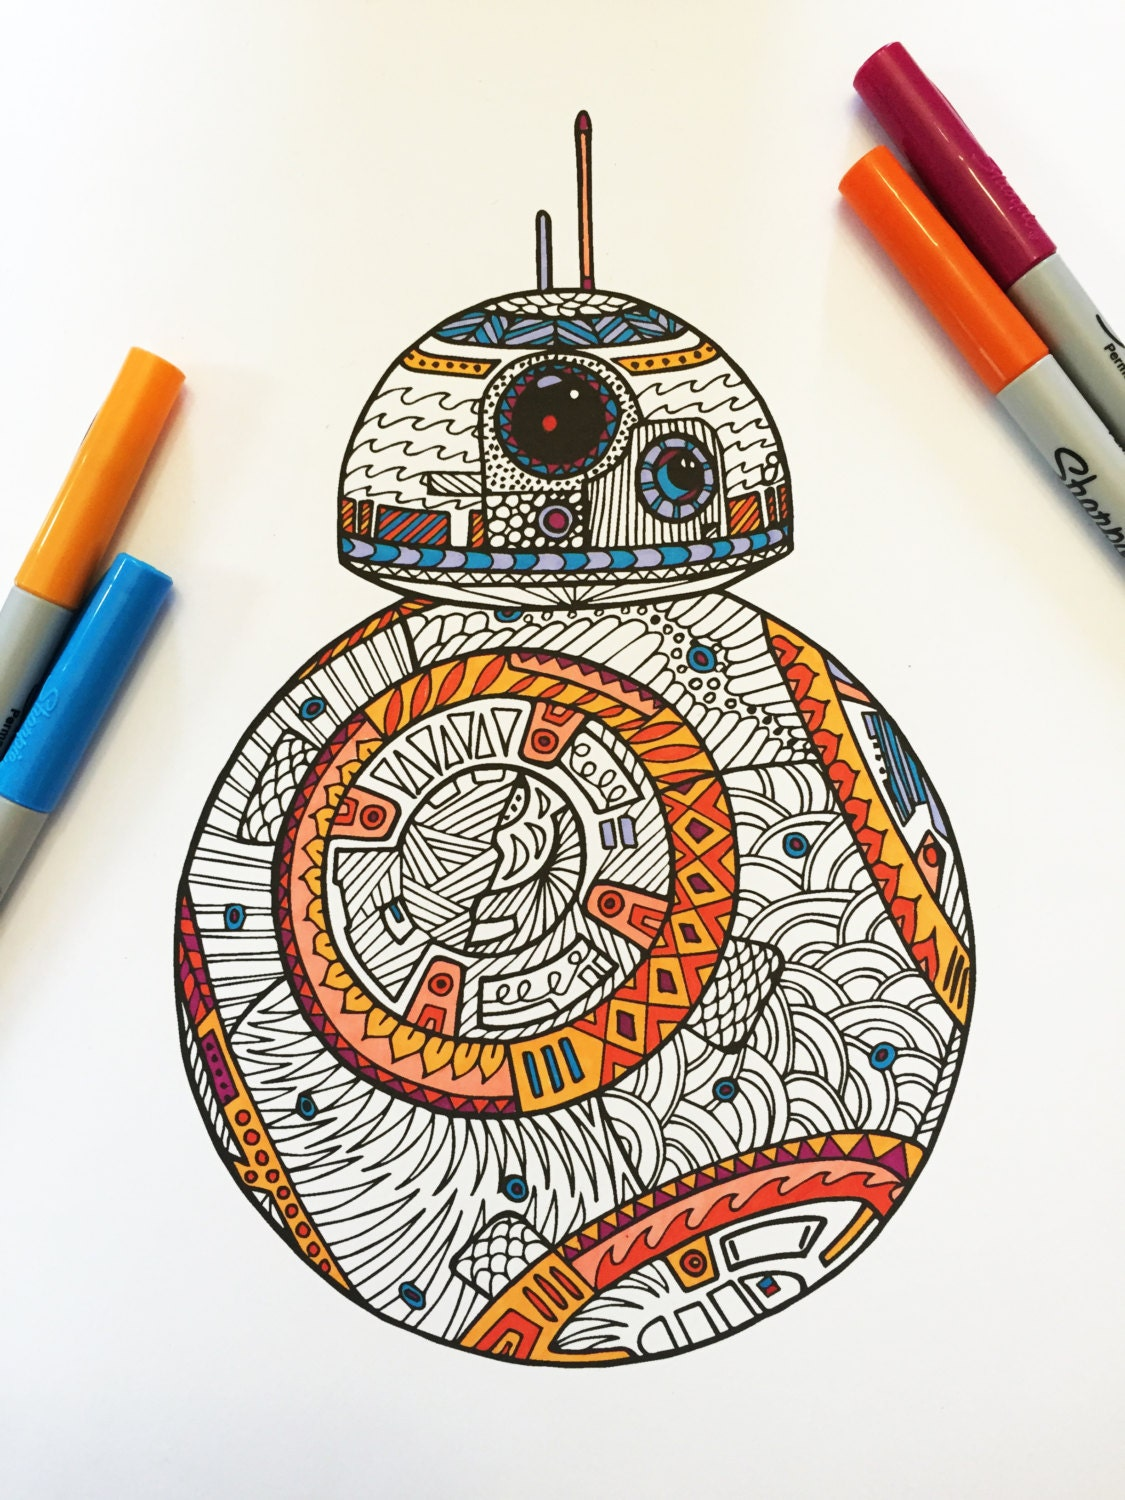 Sw swear word coloring pages etsy - Bb8 Pdf Zentangle Coloring Page